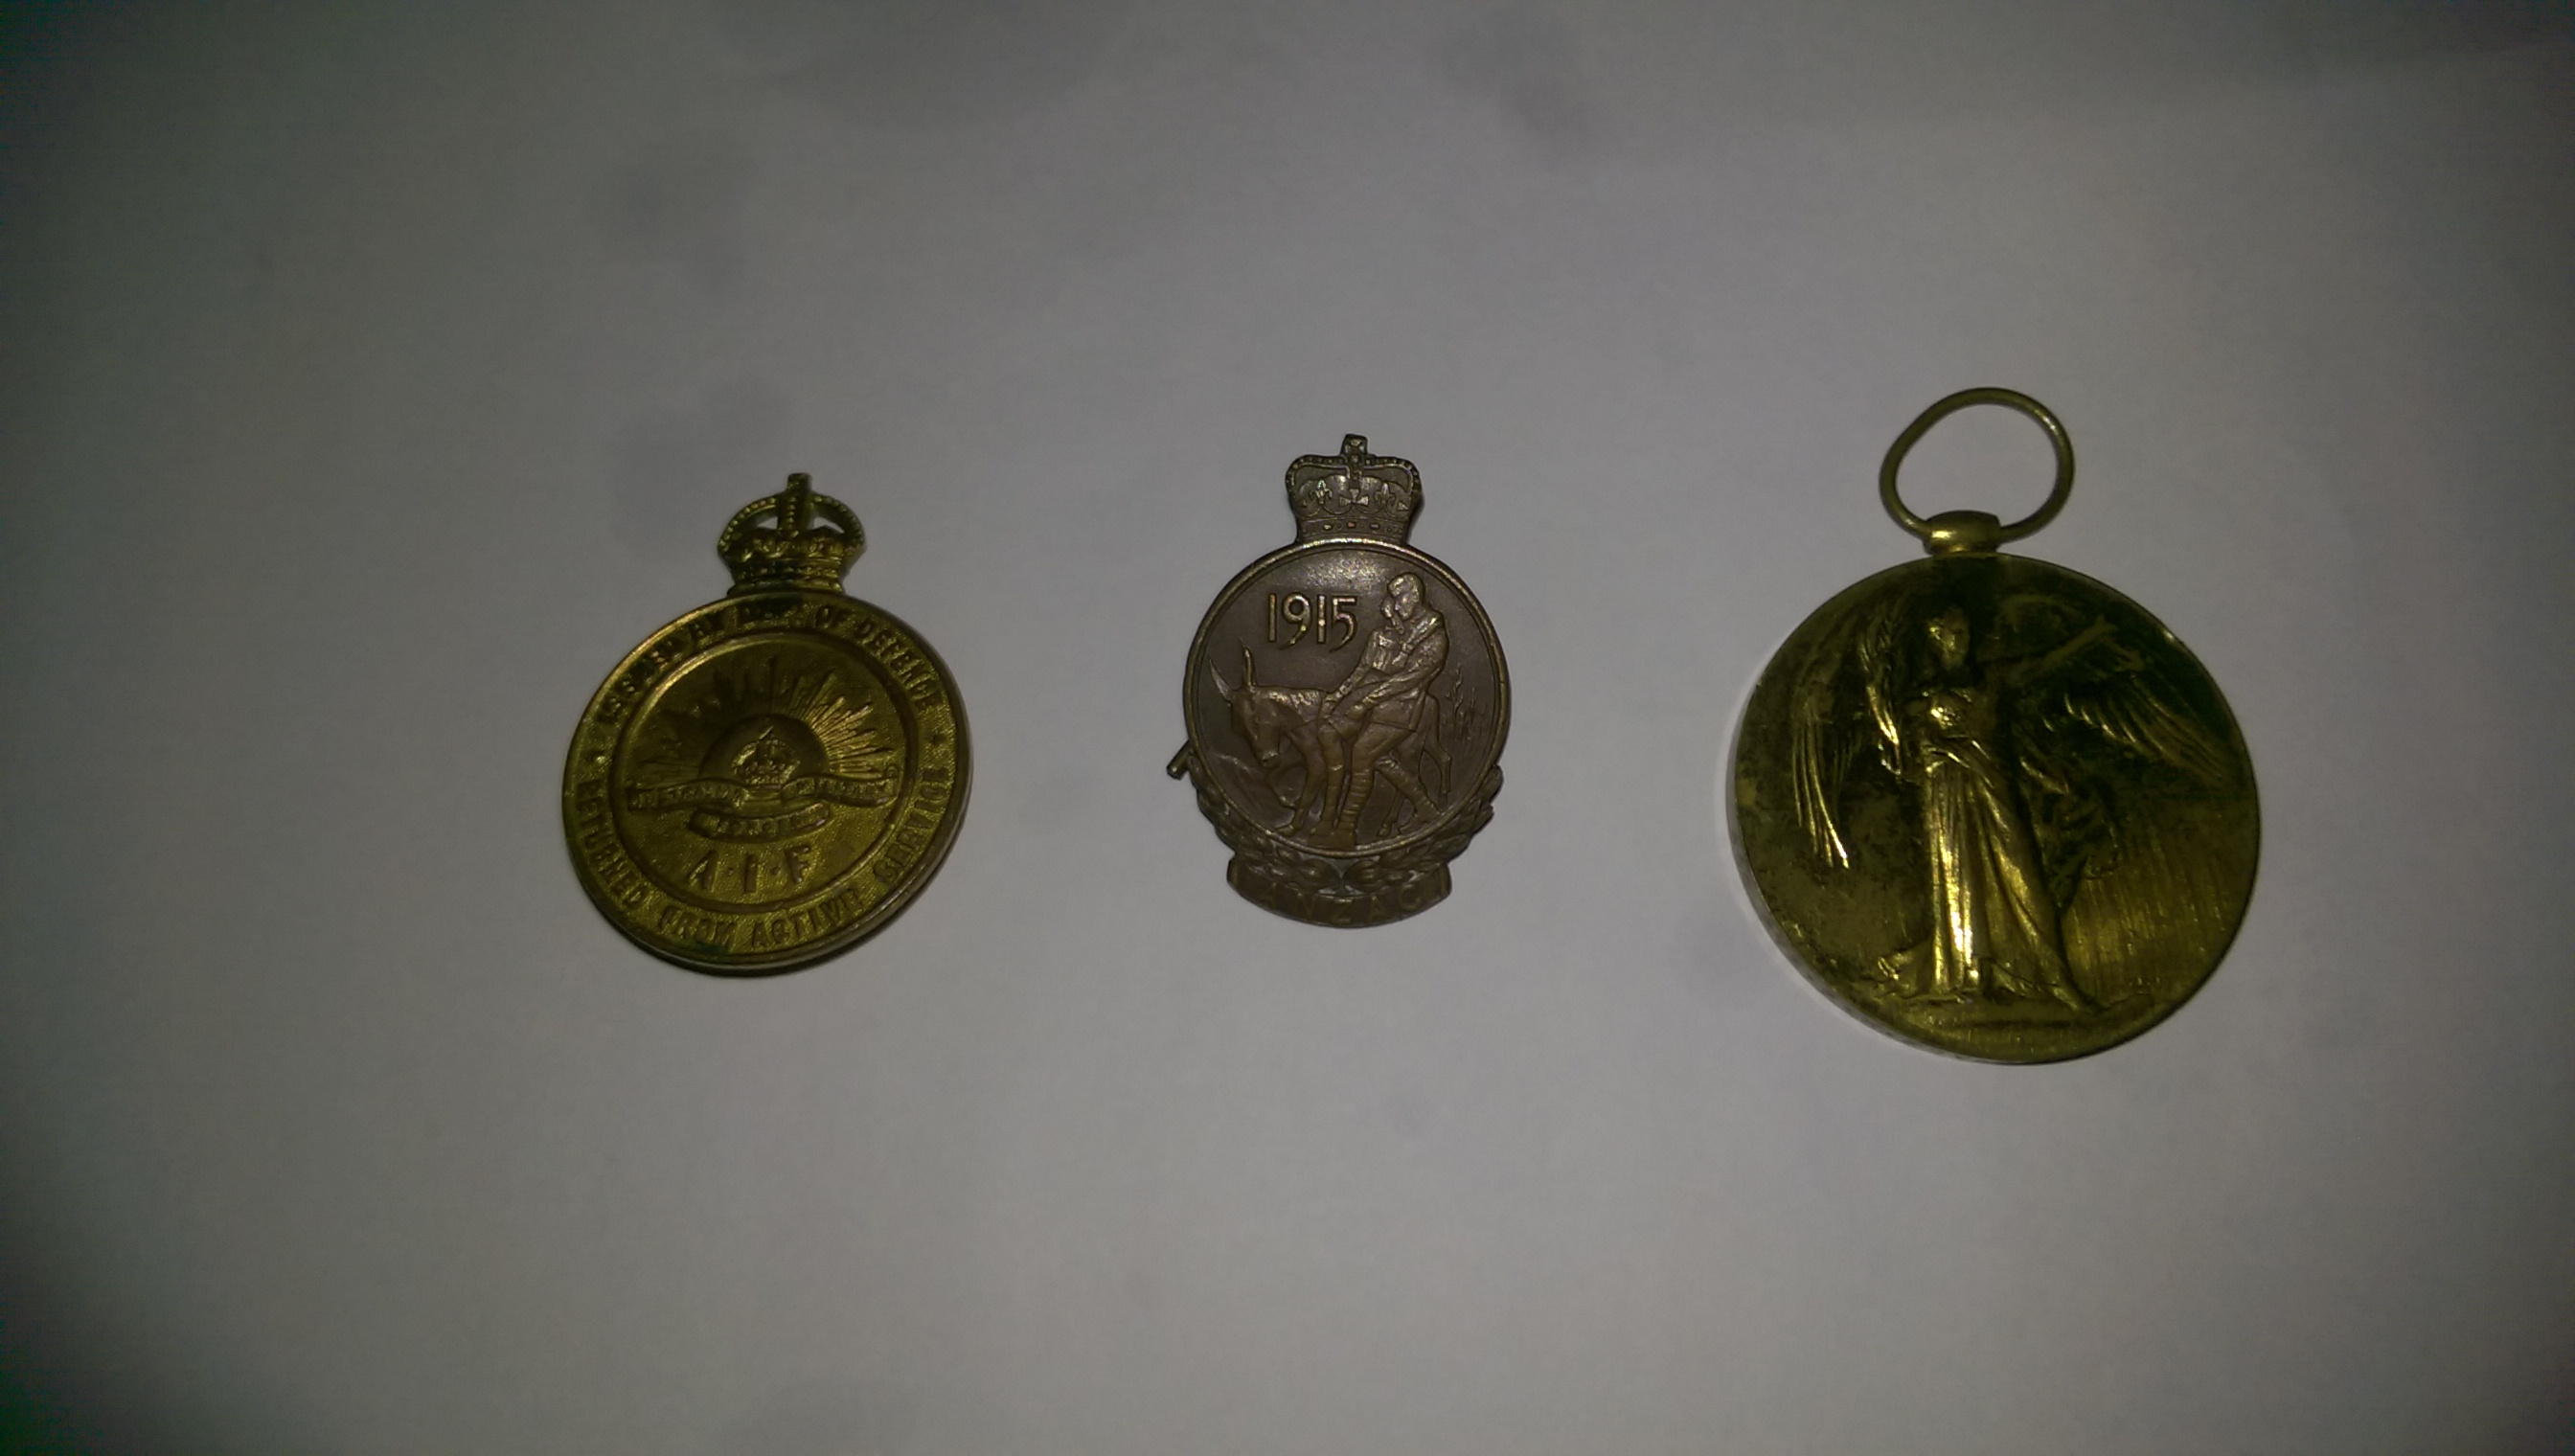 CLOSE UP OF GALLIPOLI & WW1 ANGLE MEDALS PRESENTED TO CLEMENTINA HAY MARSHALL NURSE WW1